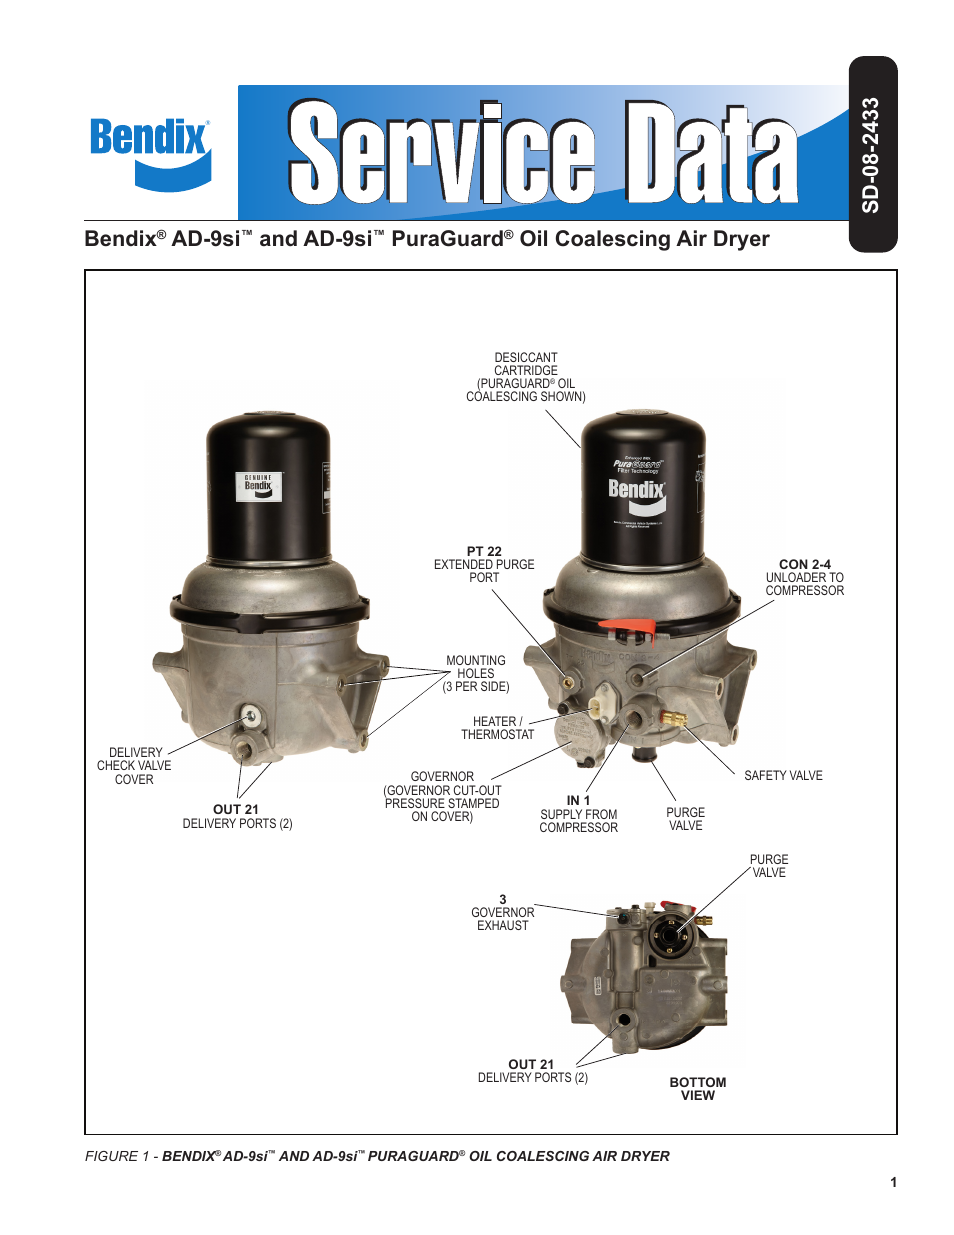 Bendix Commercial Vehicle Systems Ad 9si Oil Coalescing